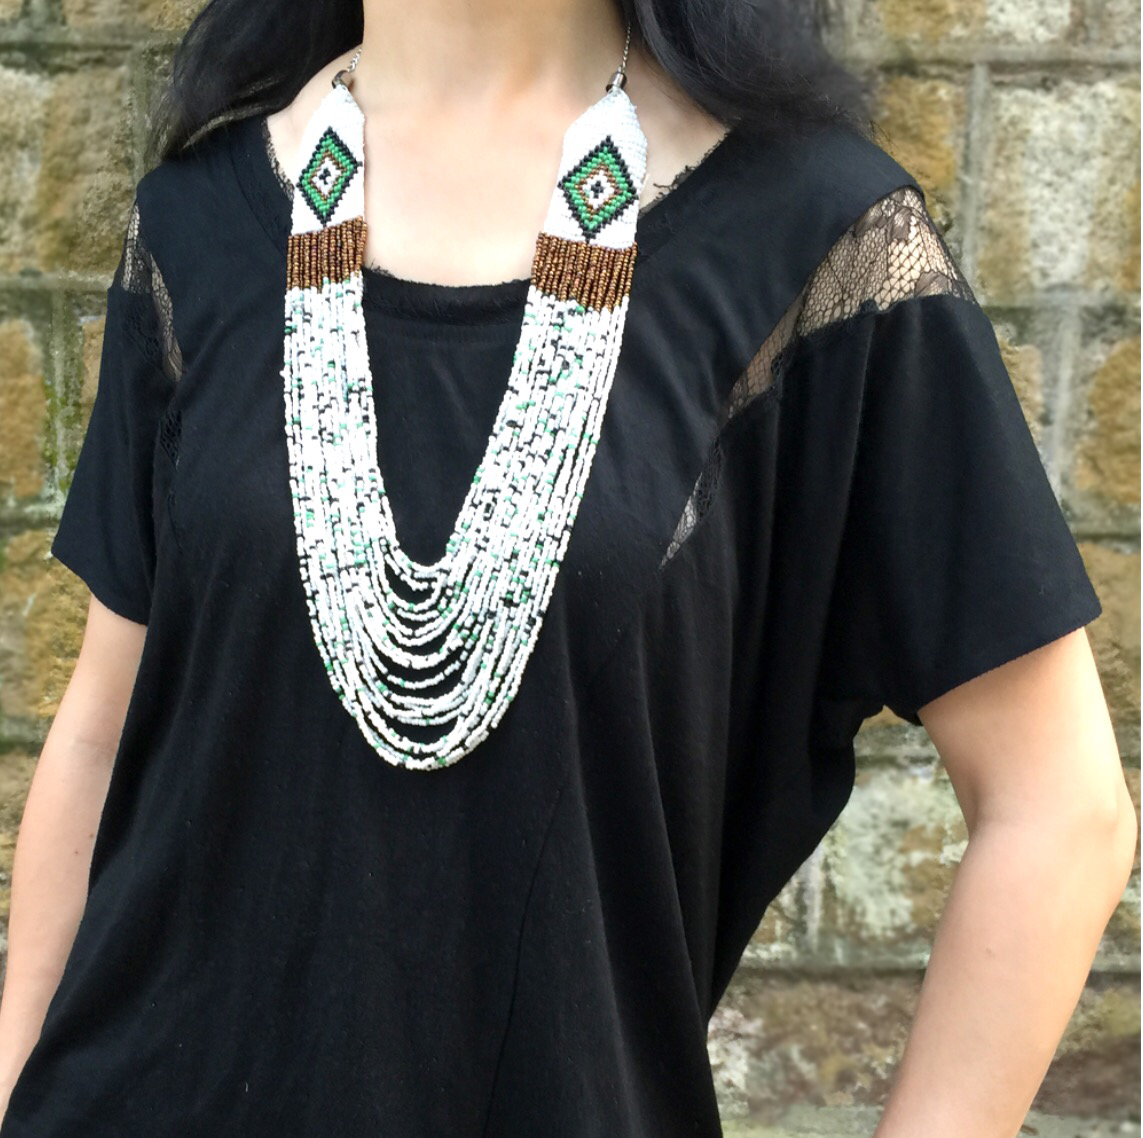 Hippie Necklace, Beads Necklace, Statement Necklace